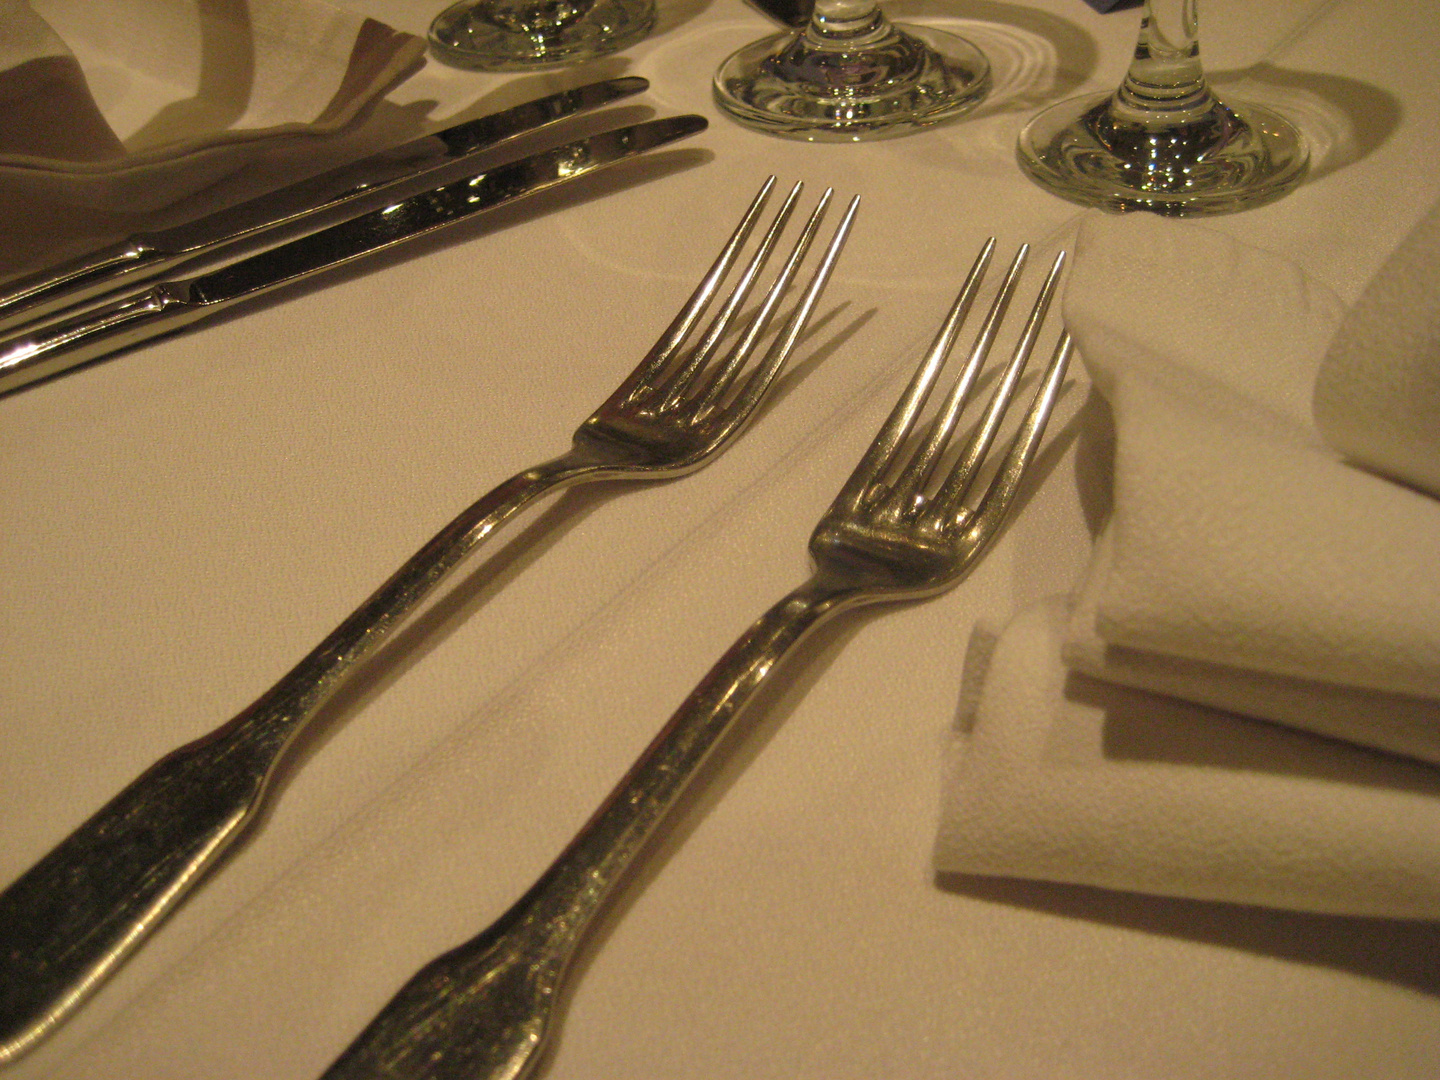 Two forks...................................